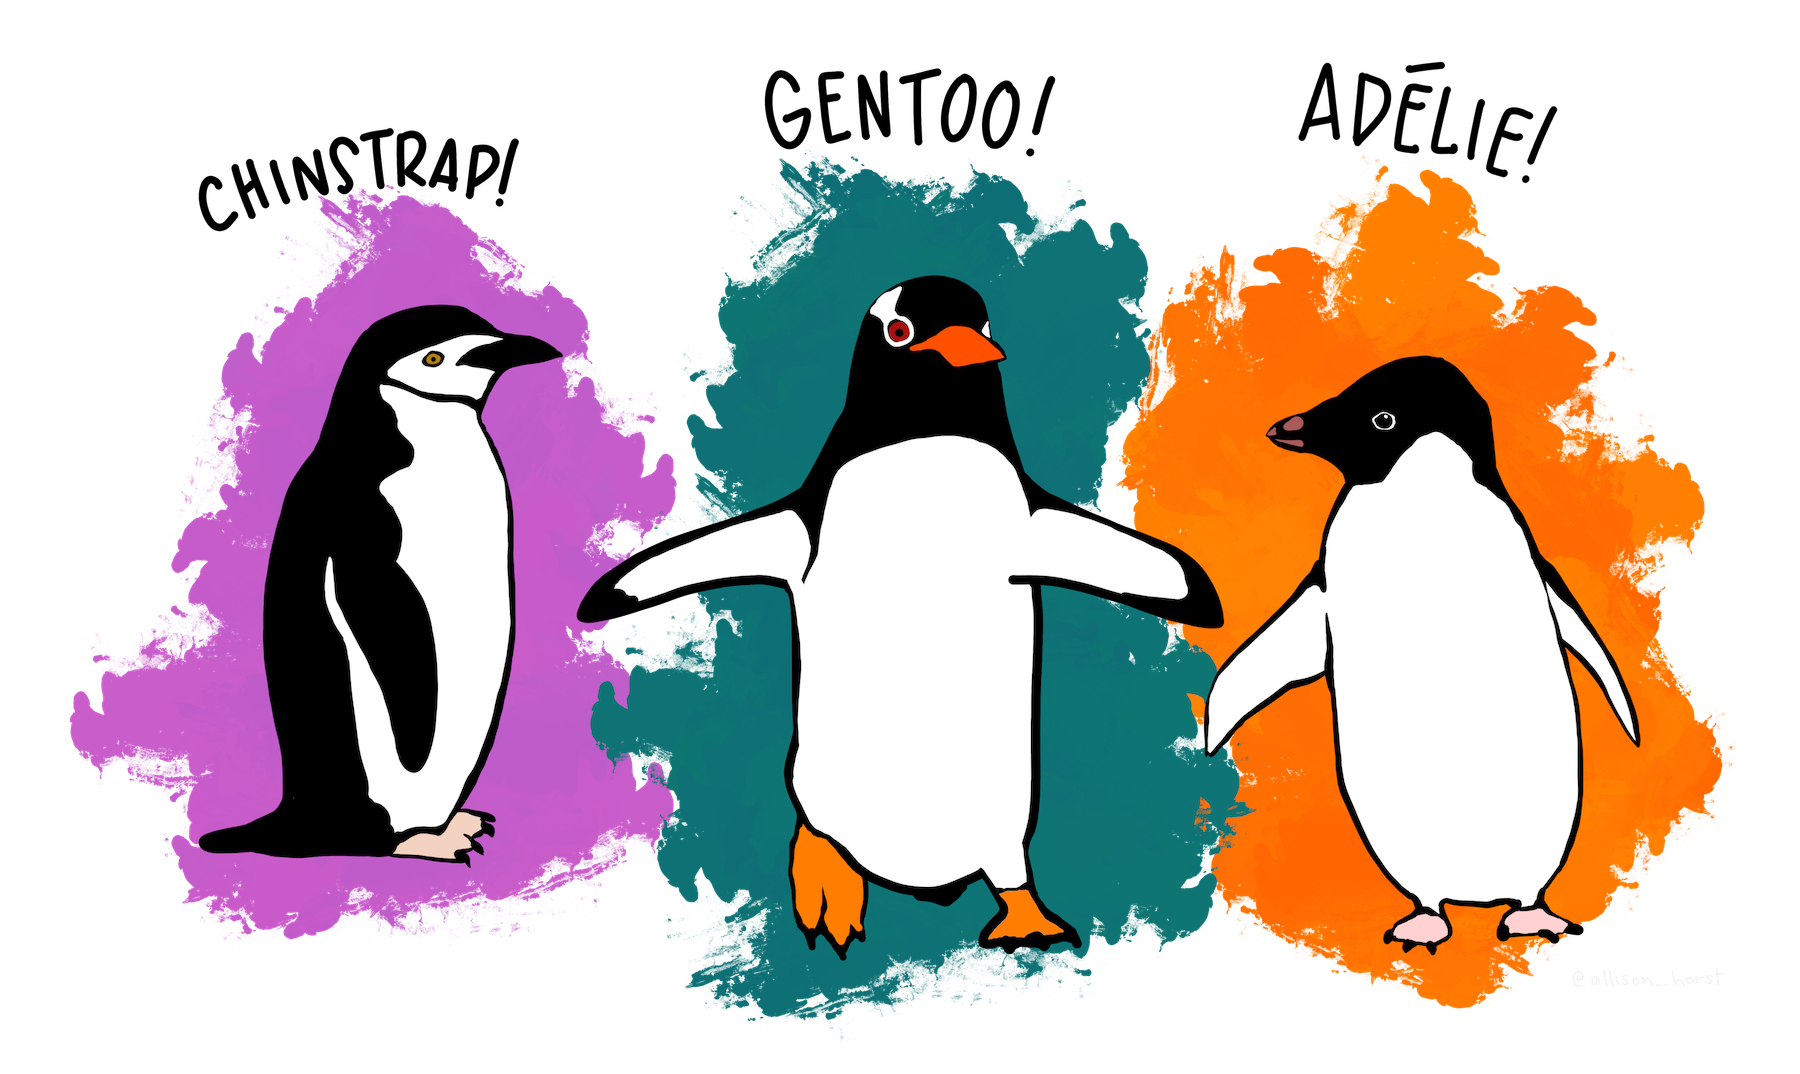 Cartoons of Chinstrap, Gentoo, and Adelie penguins